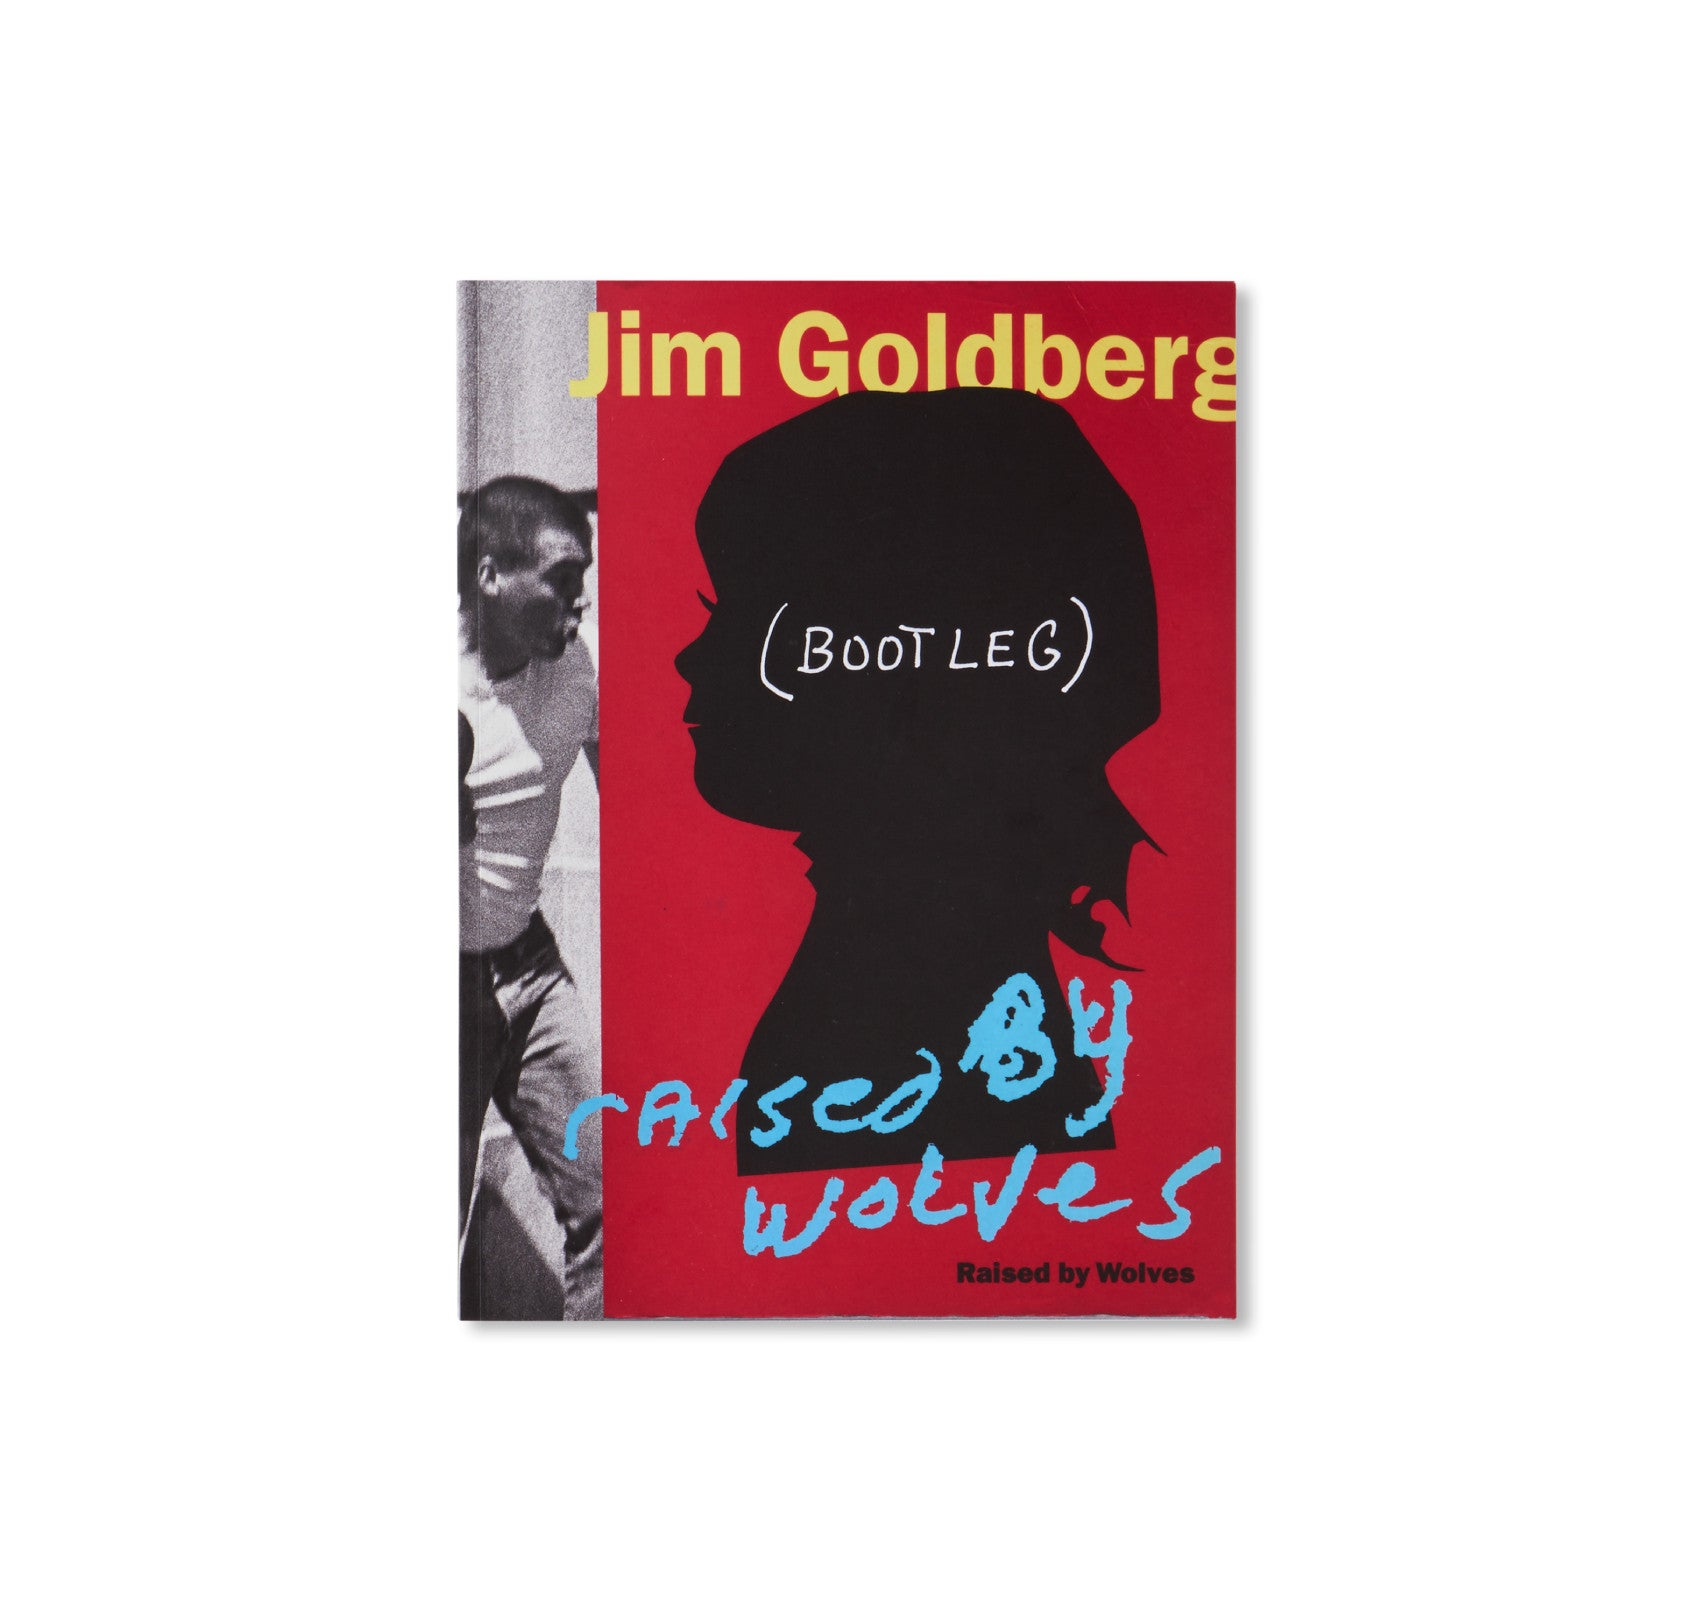 RAISED BY WOLVES BOOTLEG by Jim Goldberg [SPECIAL EDITION / EXCLUSIVE]